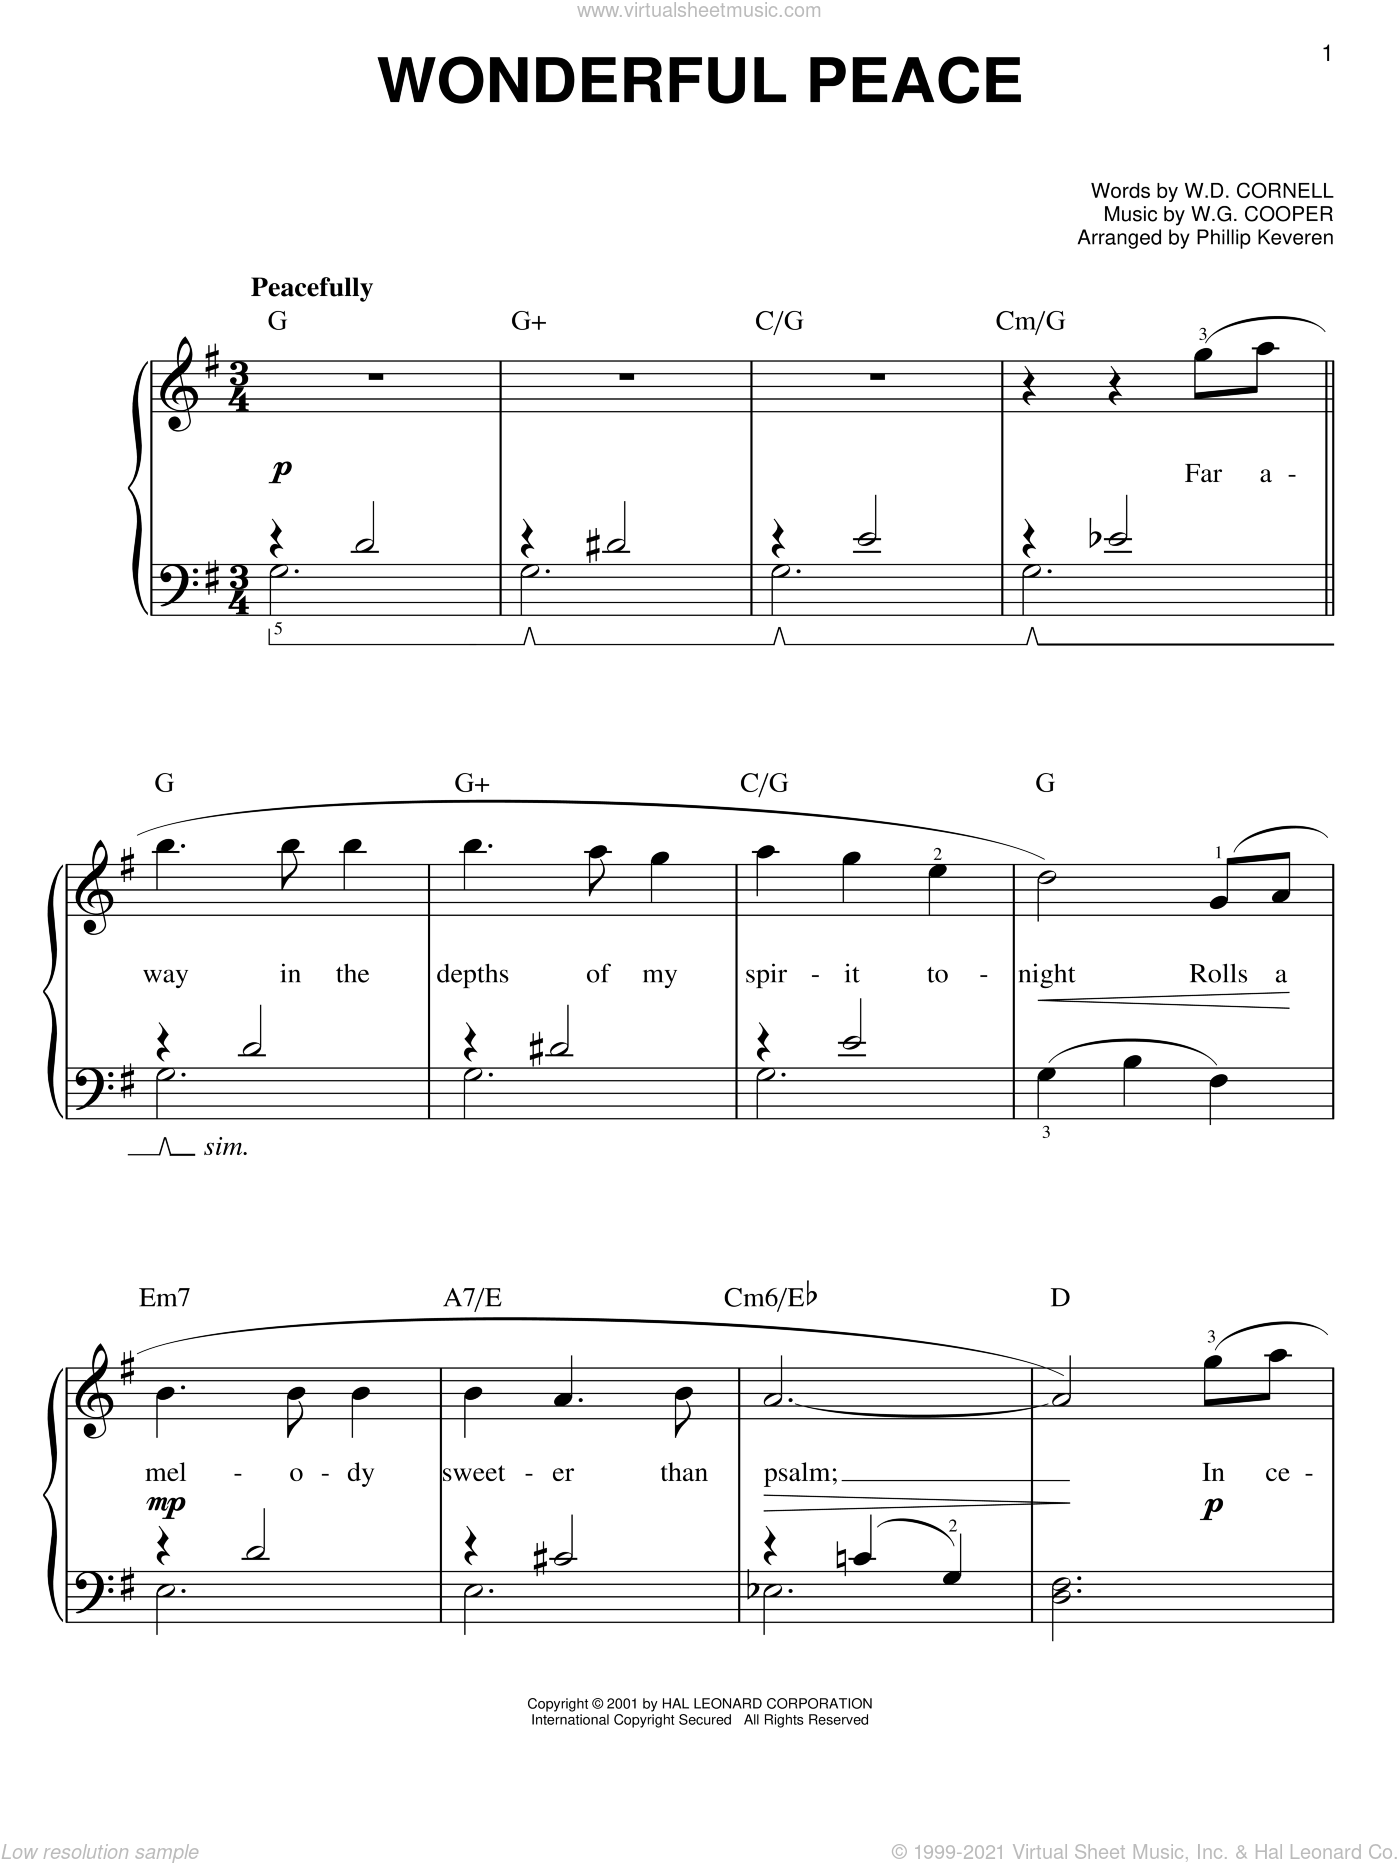 Wonderful Peace sheet music for piano solo by W.D. Cornell, Phillip Keveren and W.G. Cooper, easy skill level